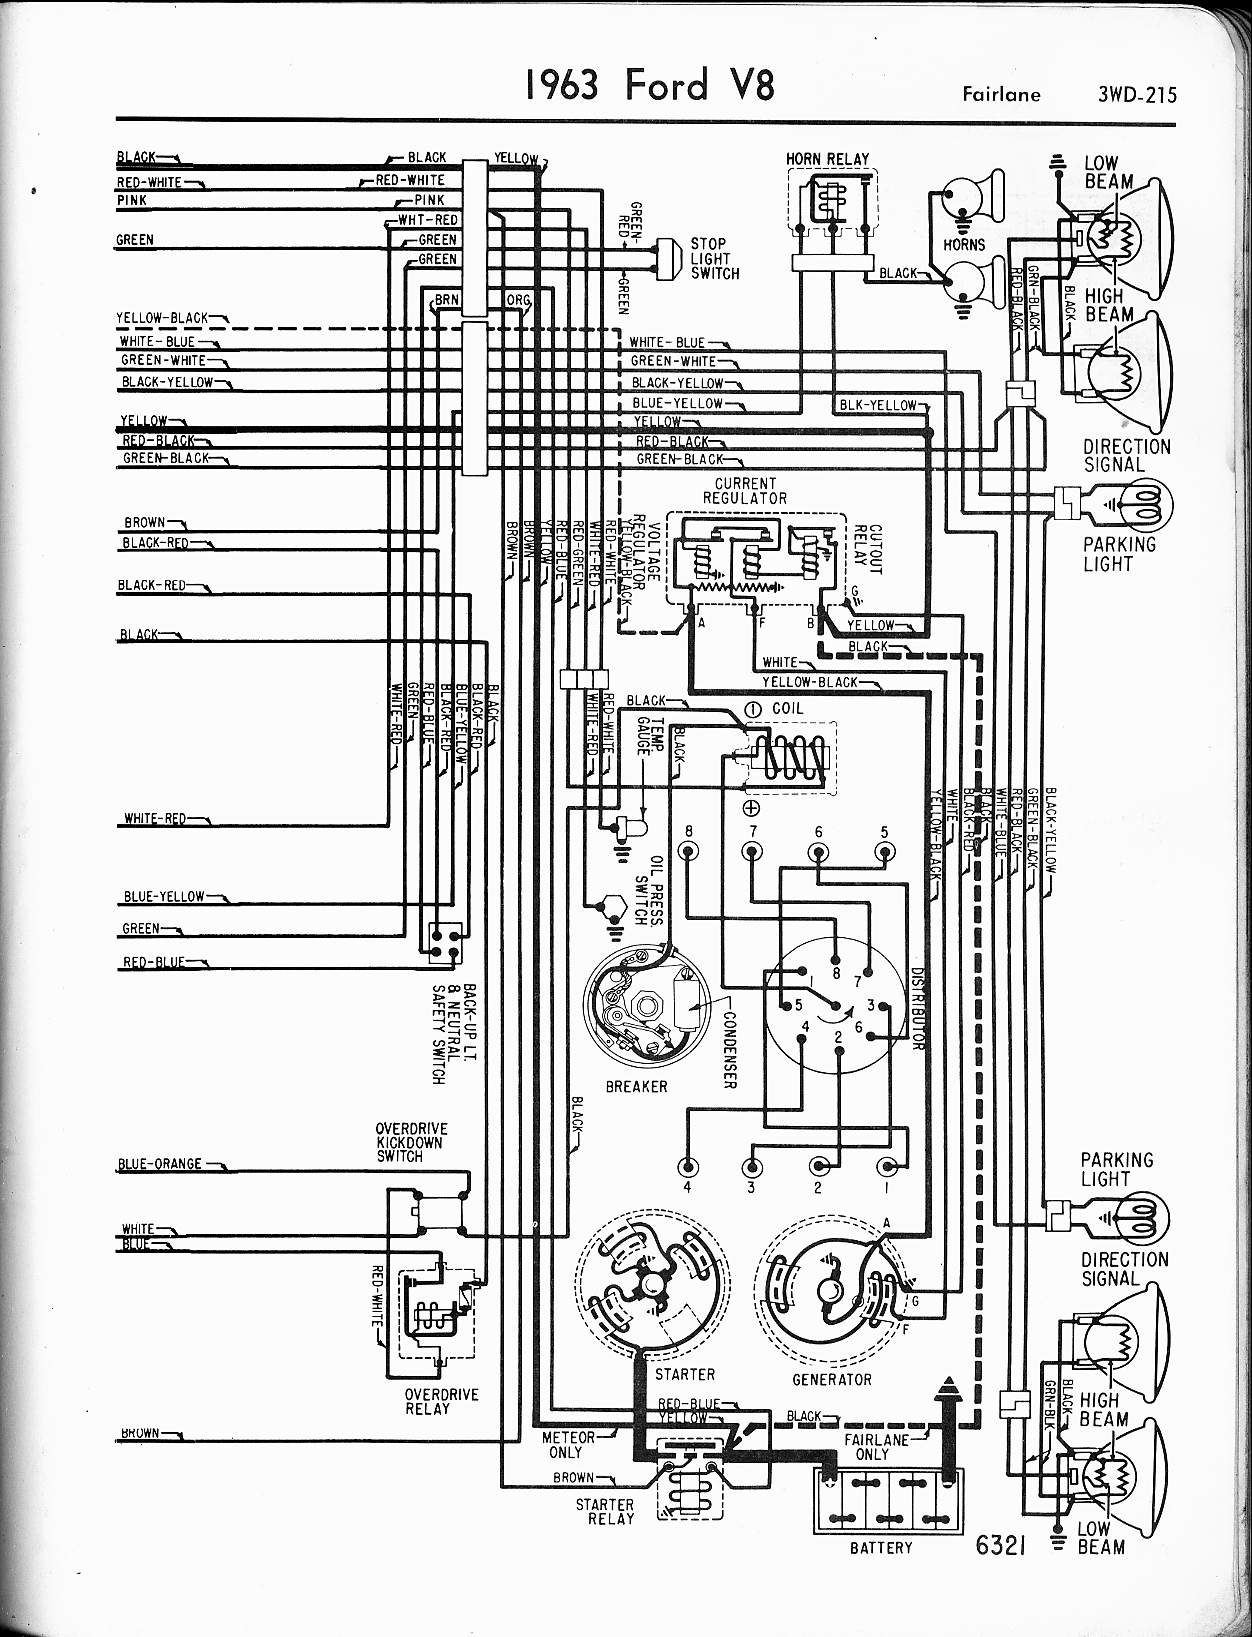 MWire5765 215 57 65 ford wiring diagrams 66 Thunderbird Wiring Diagram at edmiracle.co